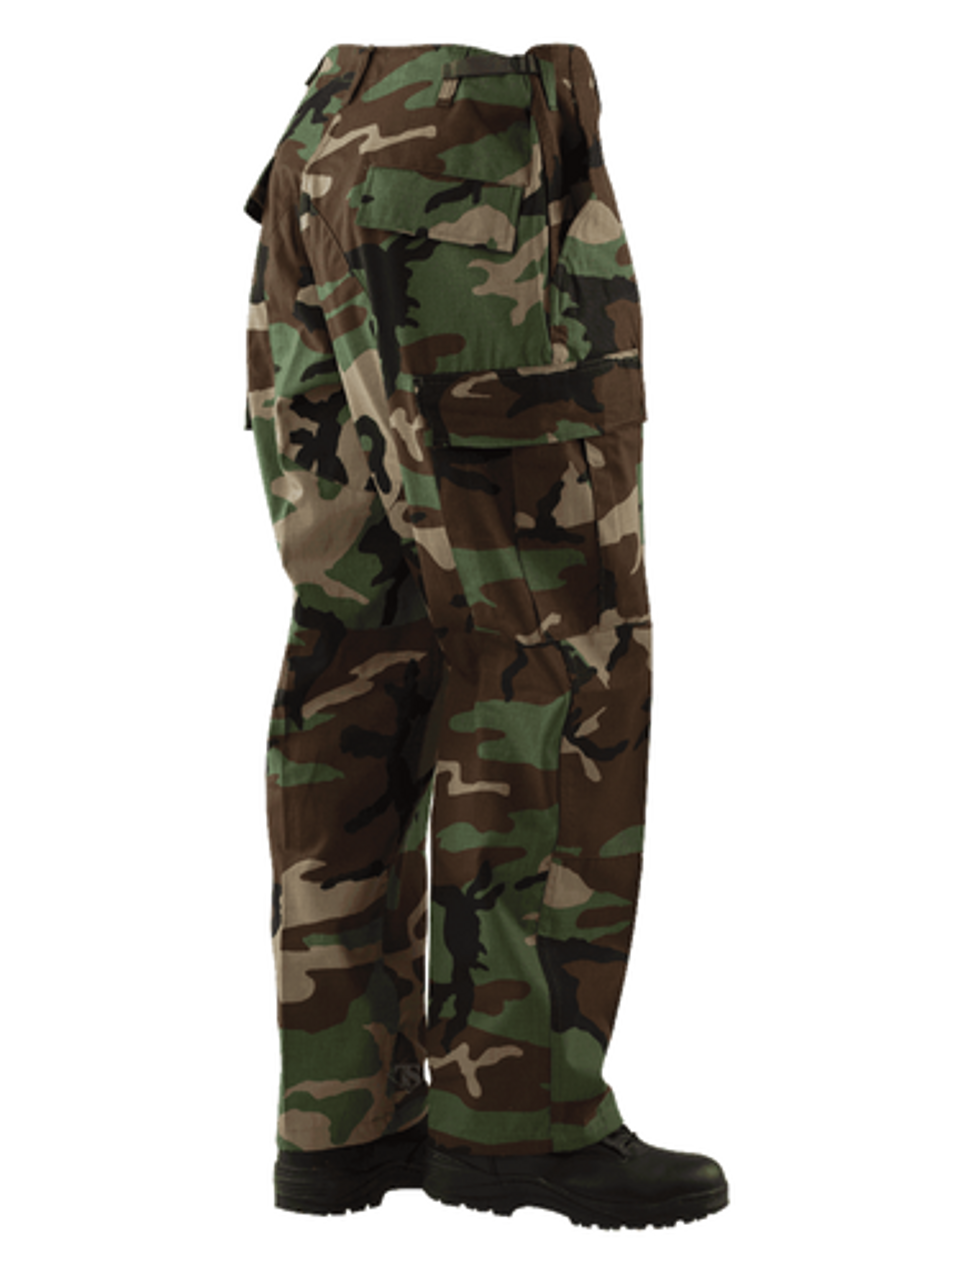 Tru-Spec 1219 BDU Men's Uniform Tactical Cargo Pants, 50/50 Nylon/Cotton Rip-Stop, Relaxed Fit, Two adjustable side tabs secured with four bartacks, Nylon drawstring leg ties